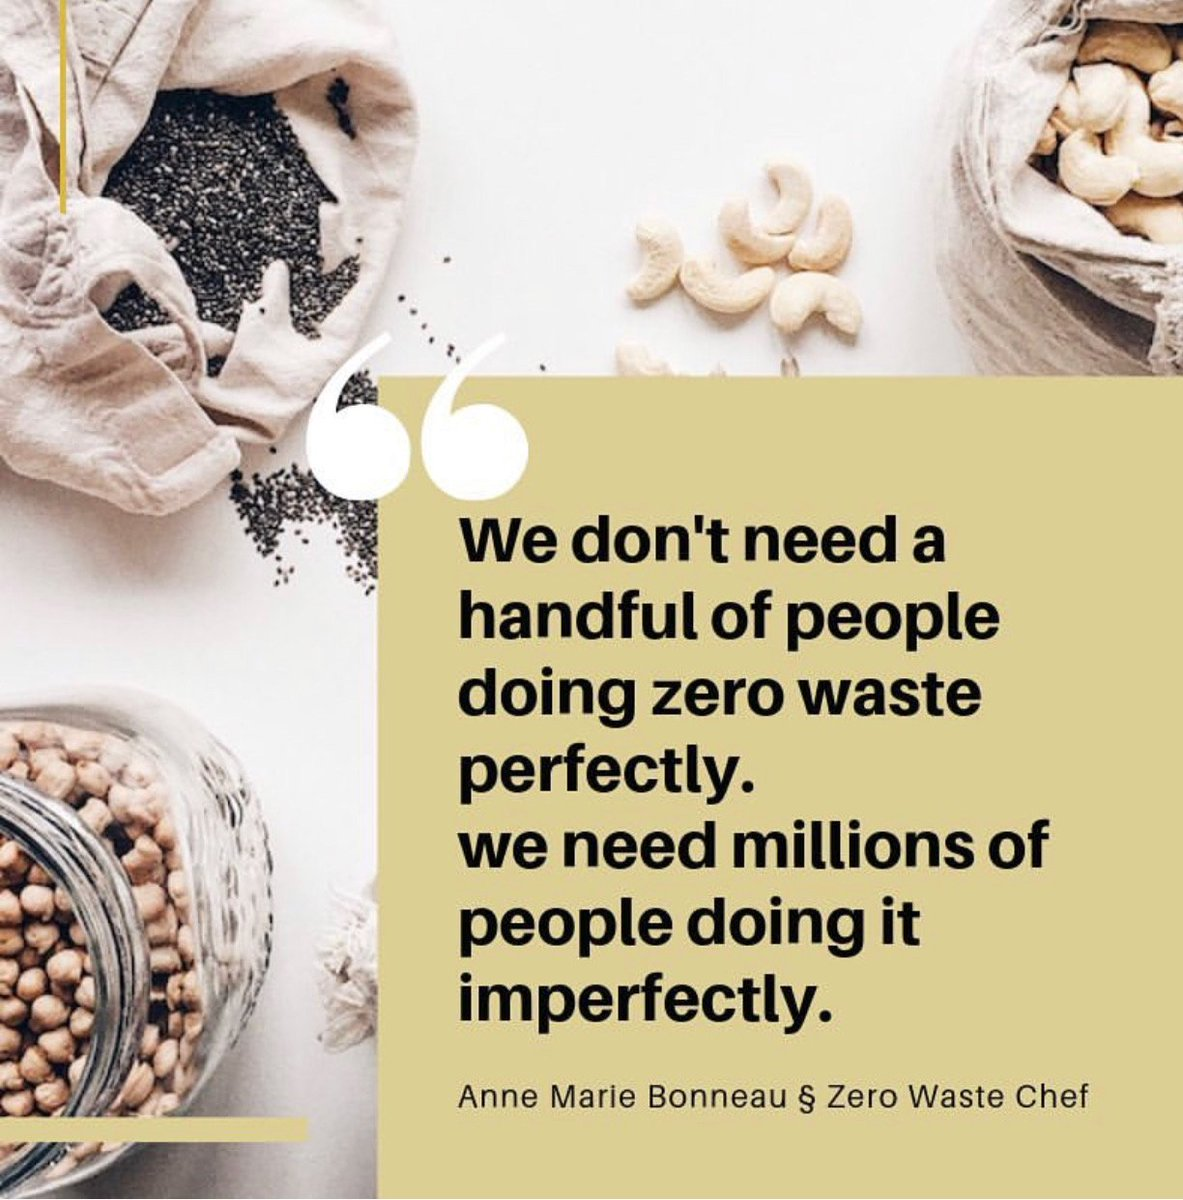 We Don't Need A Handful of People Doing Zero Waste Perfectly | Anne Marie Bonneau | Zero Waste Chef